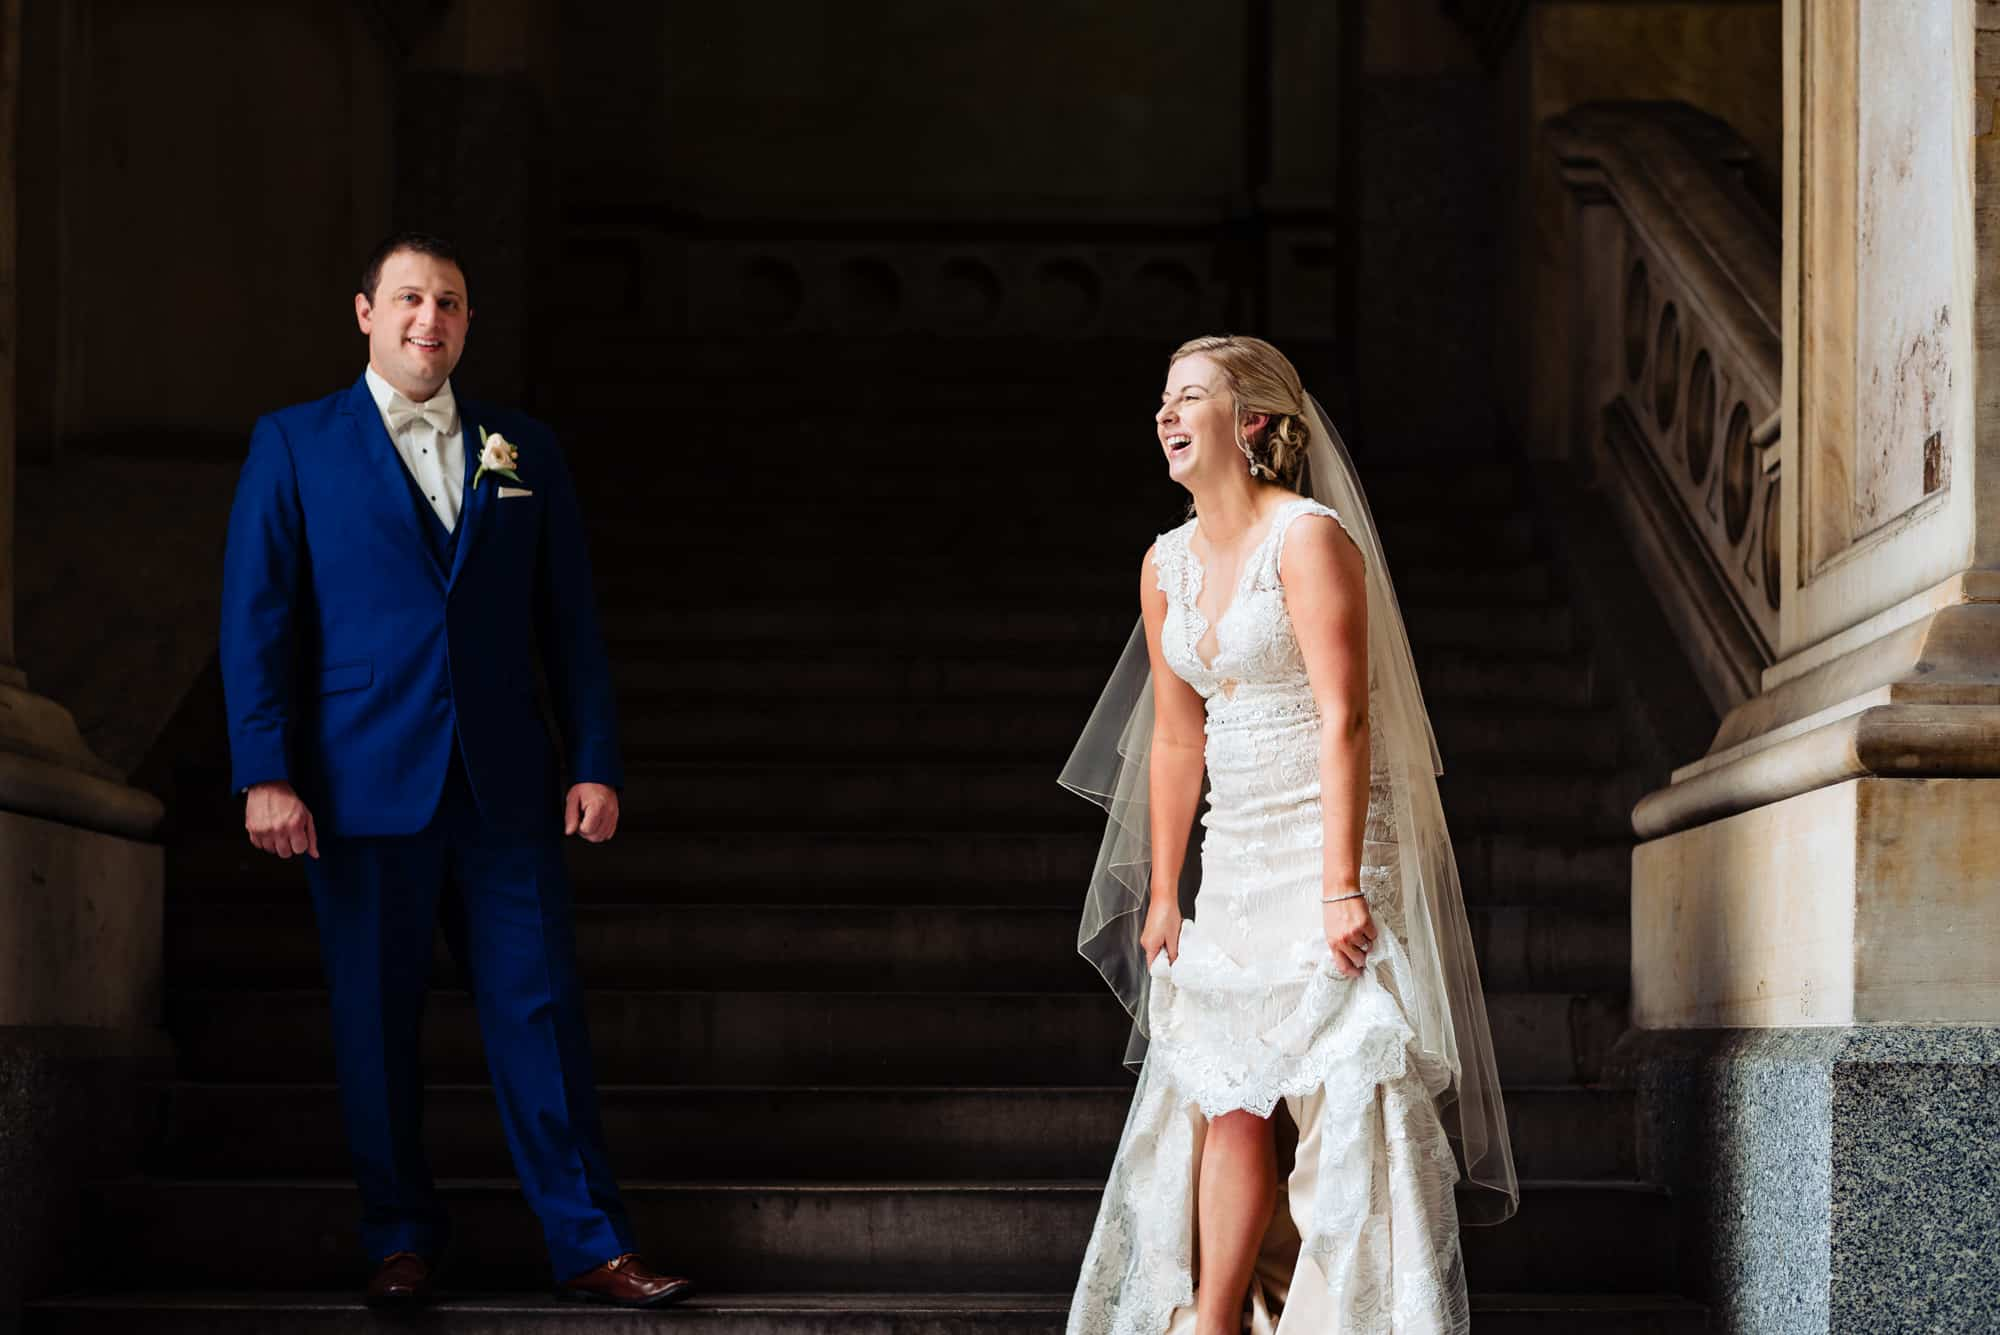 wedding day, bride laughing at groom in staircase while holding dress above her knees